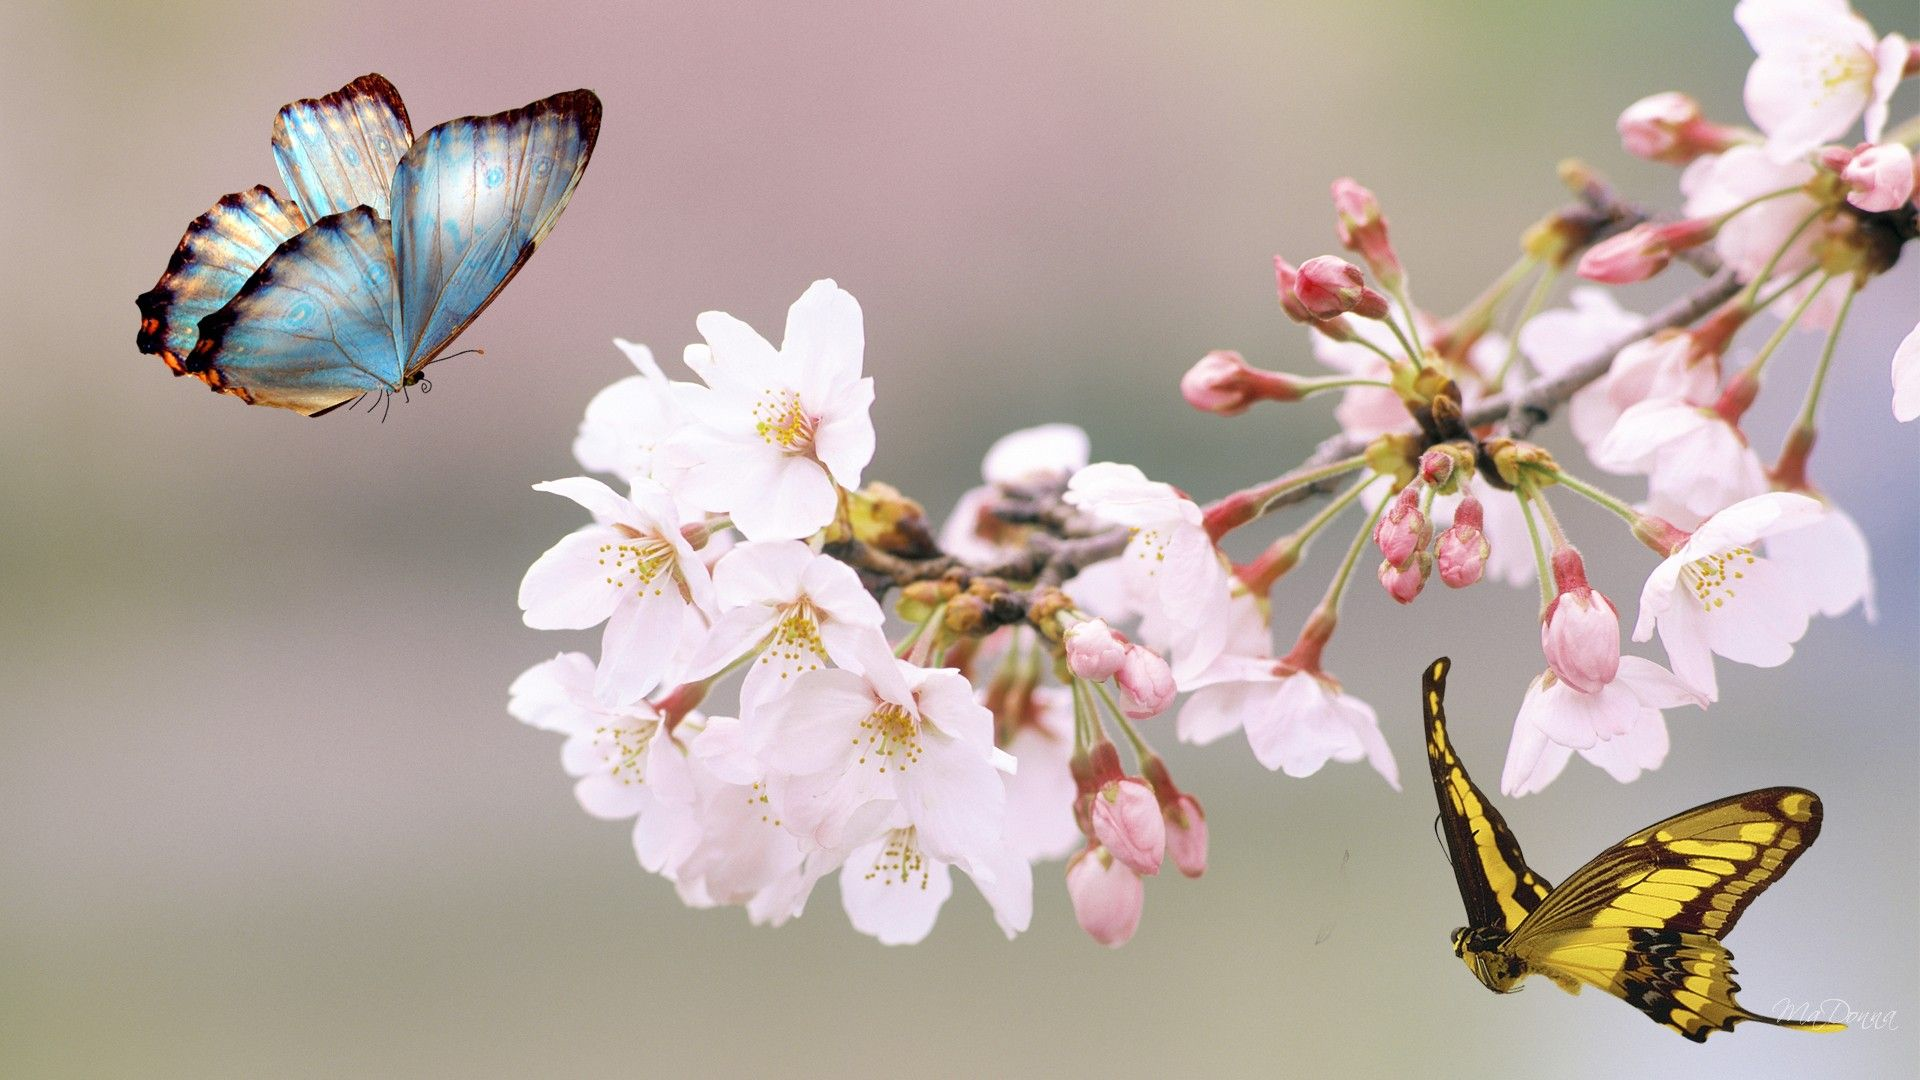 Beautiful Pictures Of Flowers And Butterflies Birds 53 Flowers And Butterflies Pictures Images Wallpapers